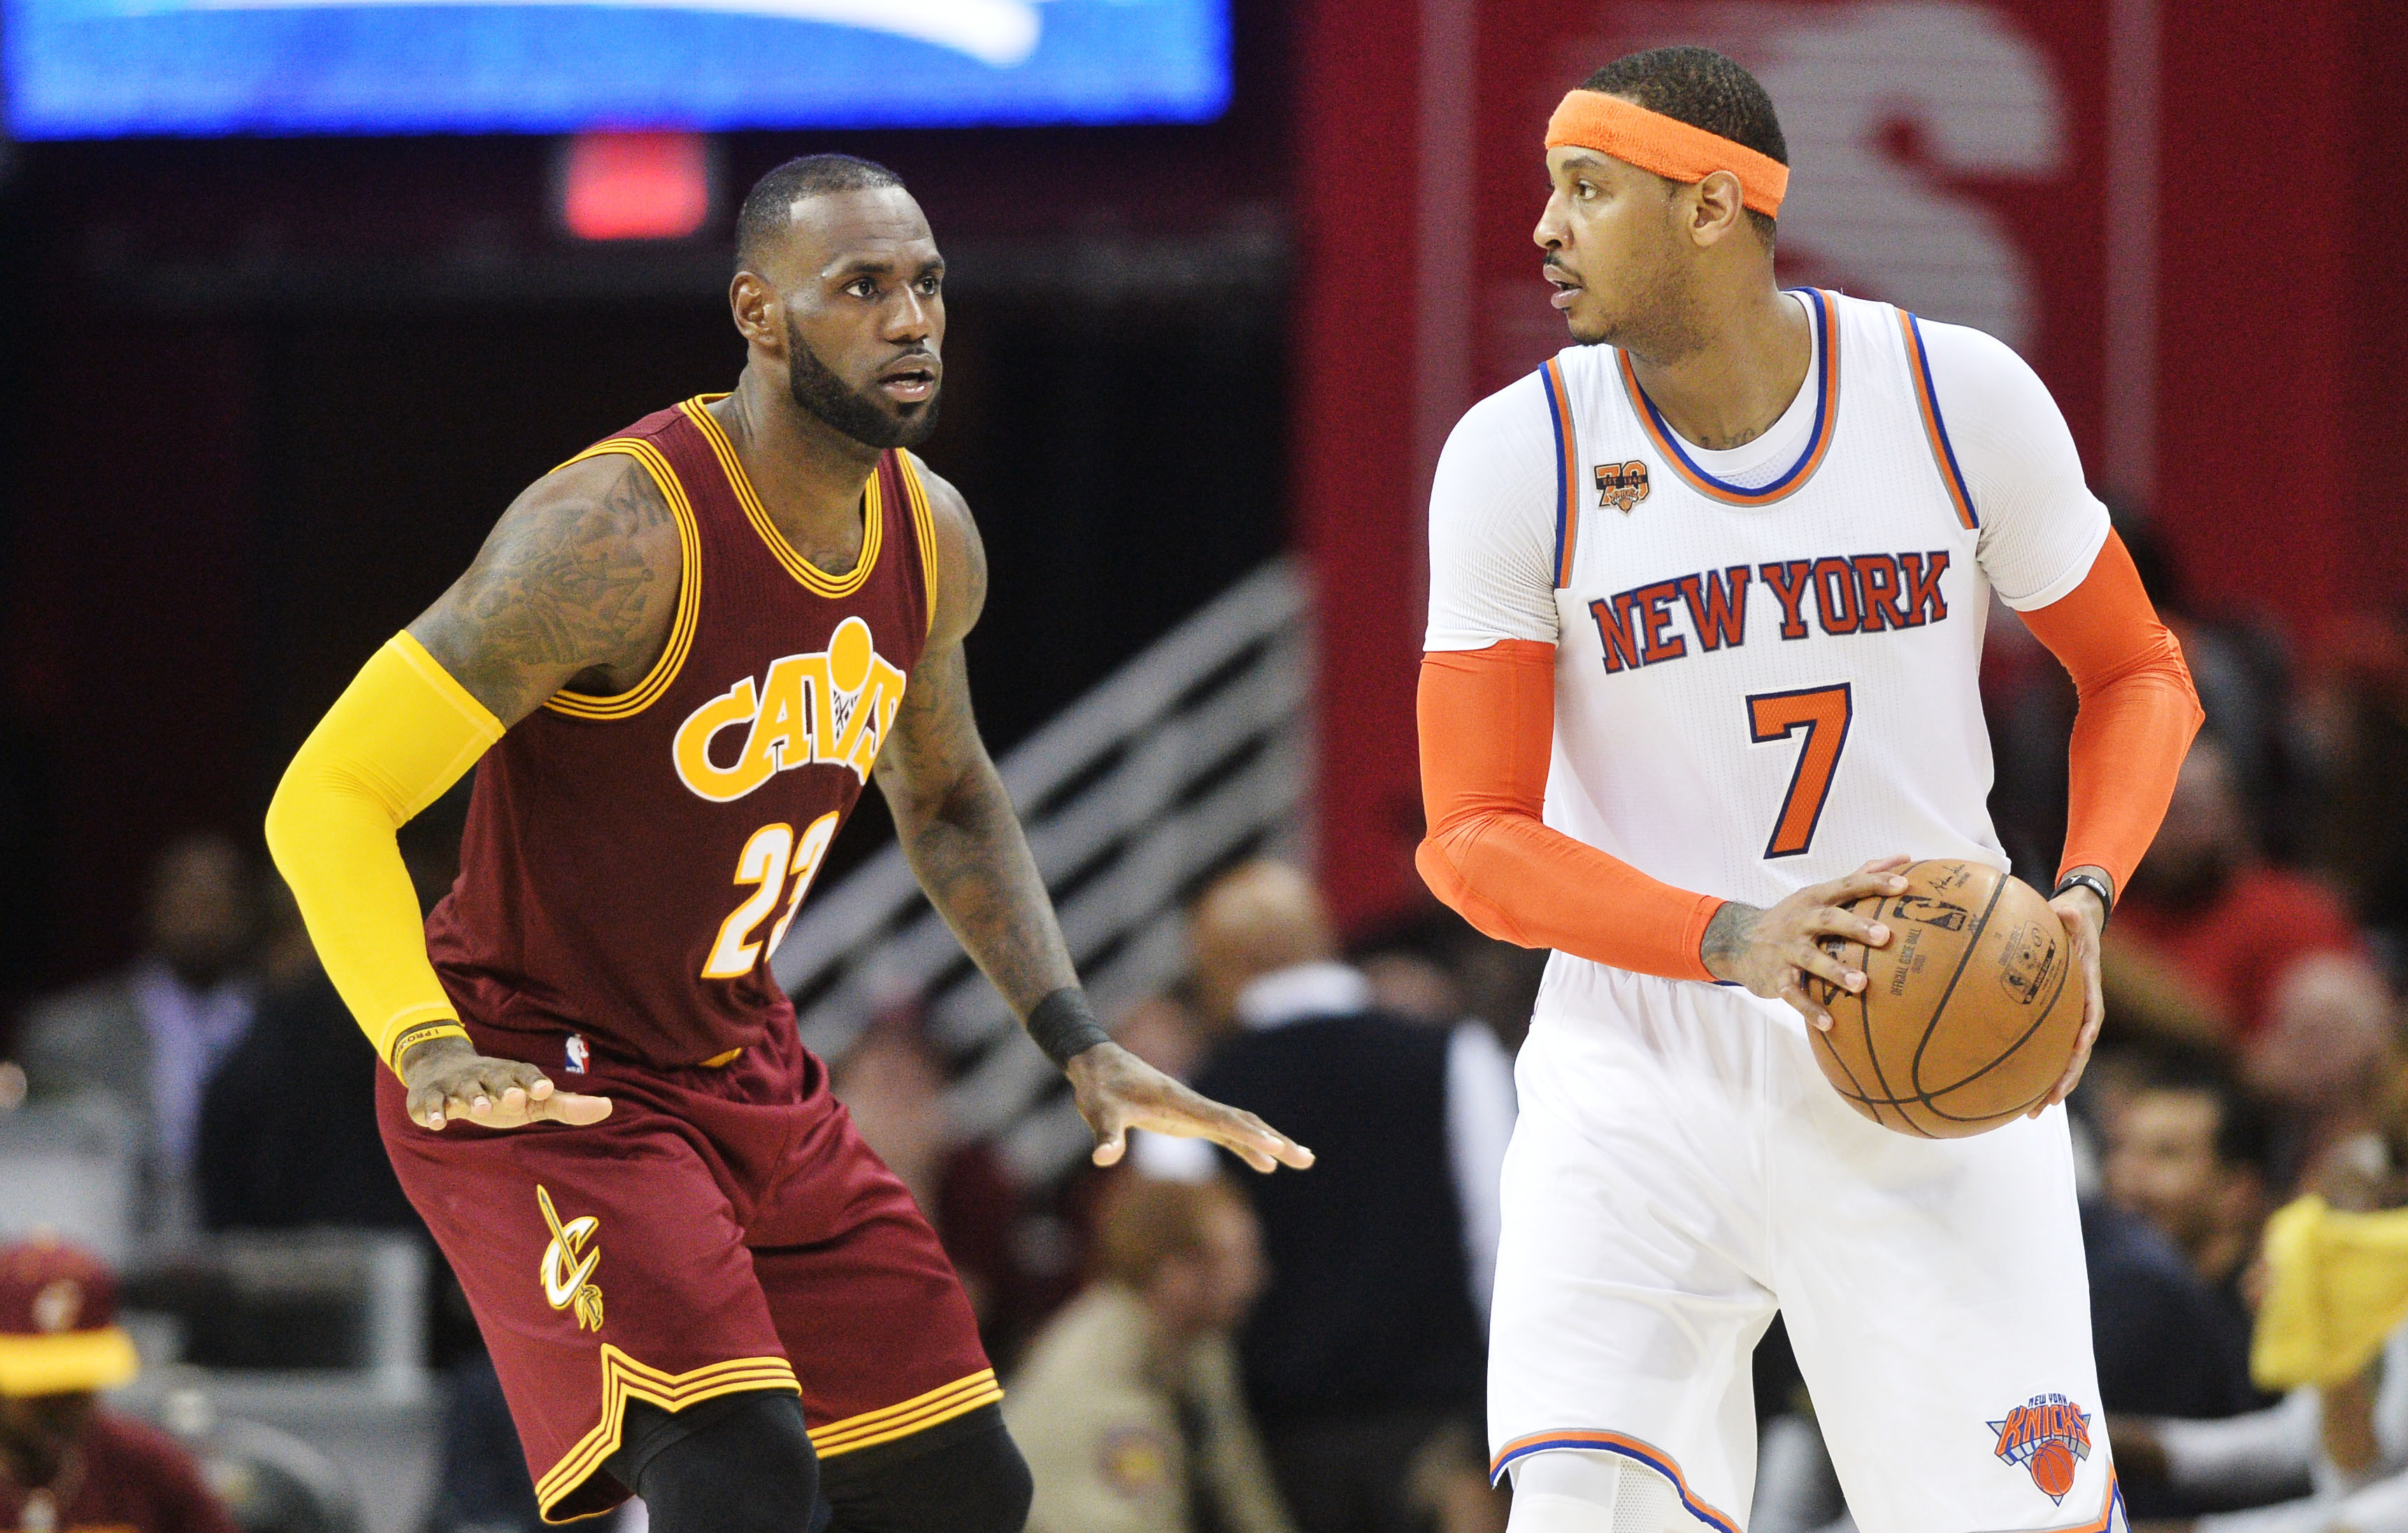 9896604-nba-new-york-knicks-at-cleveland-cavaliers